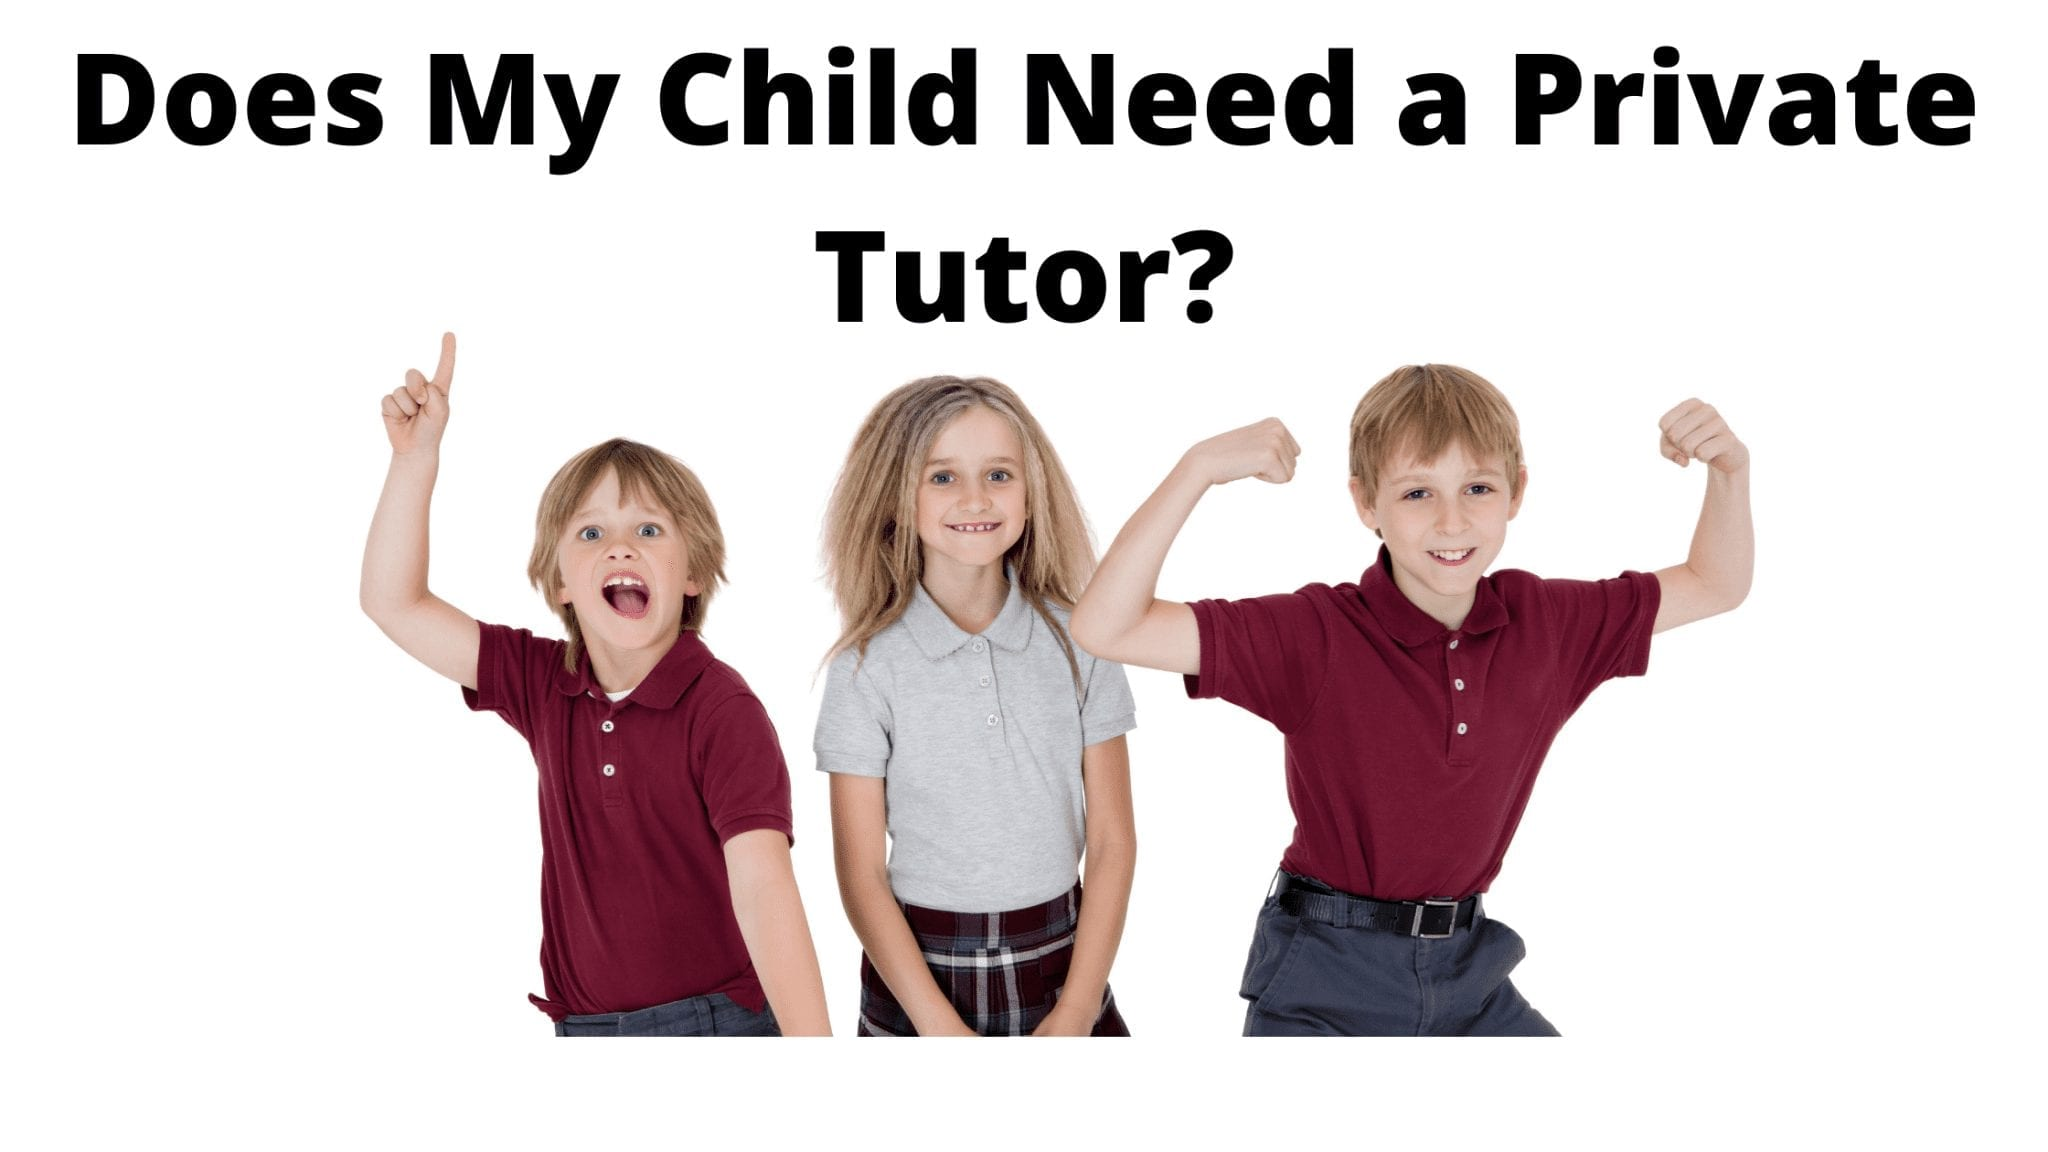 Does My Child Need a Private Tutor?